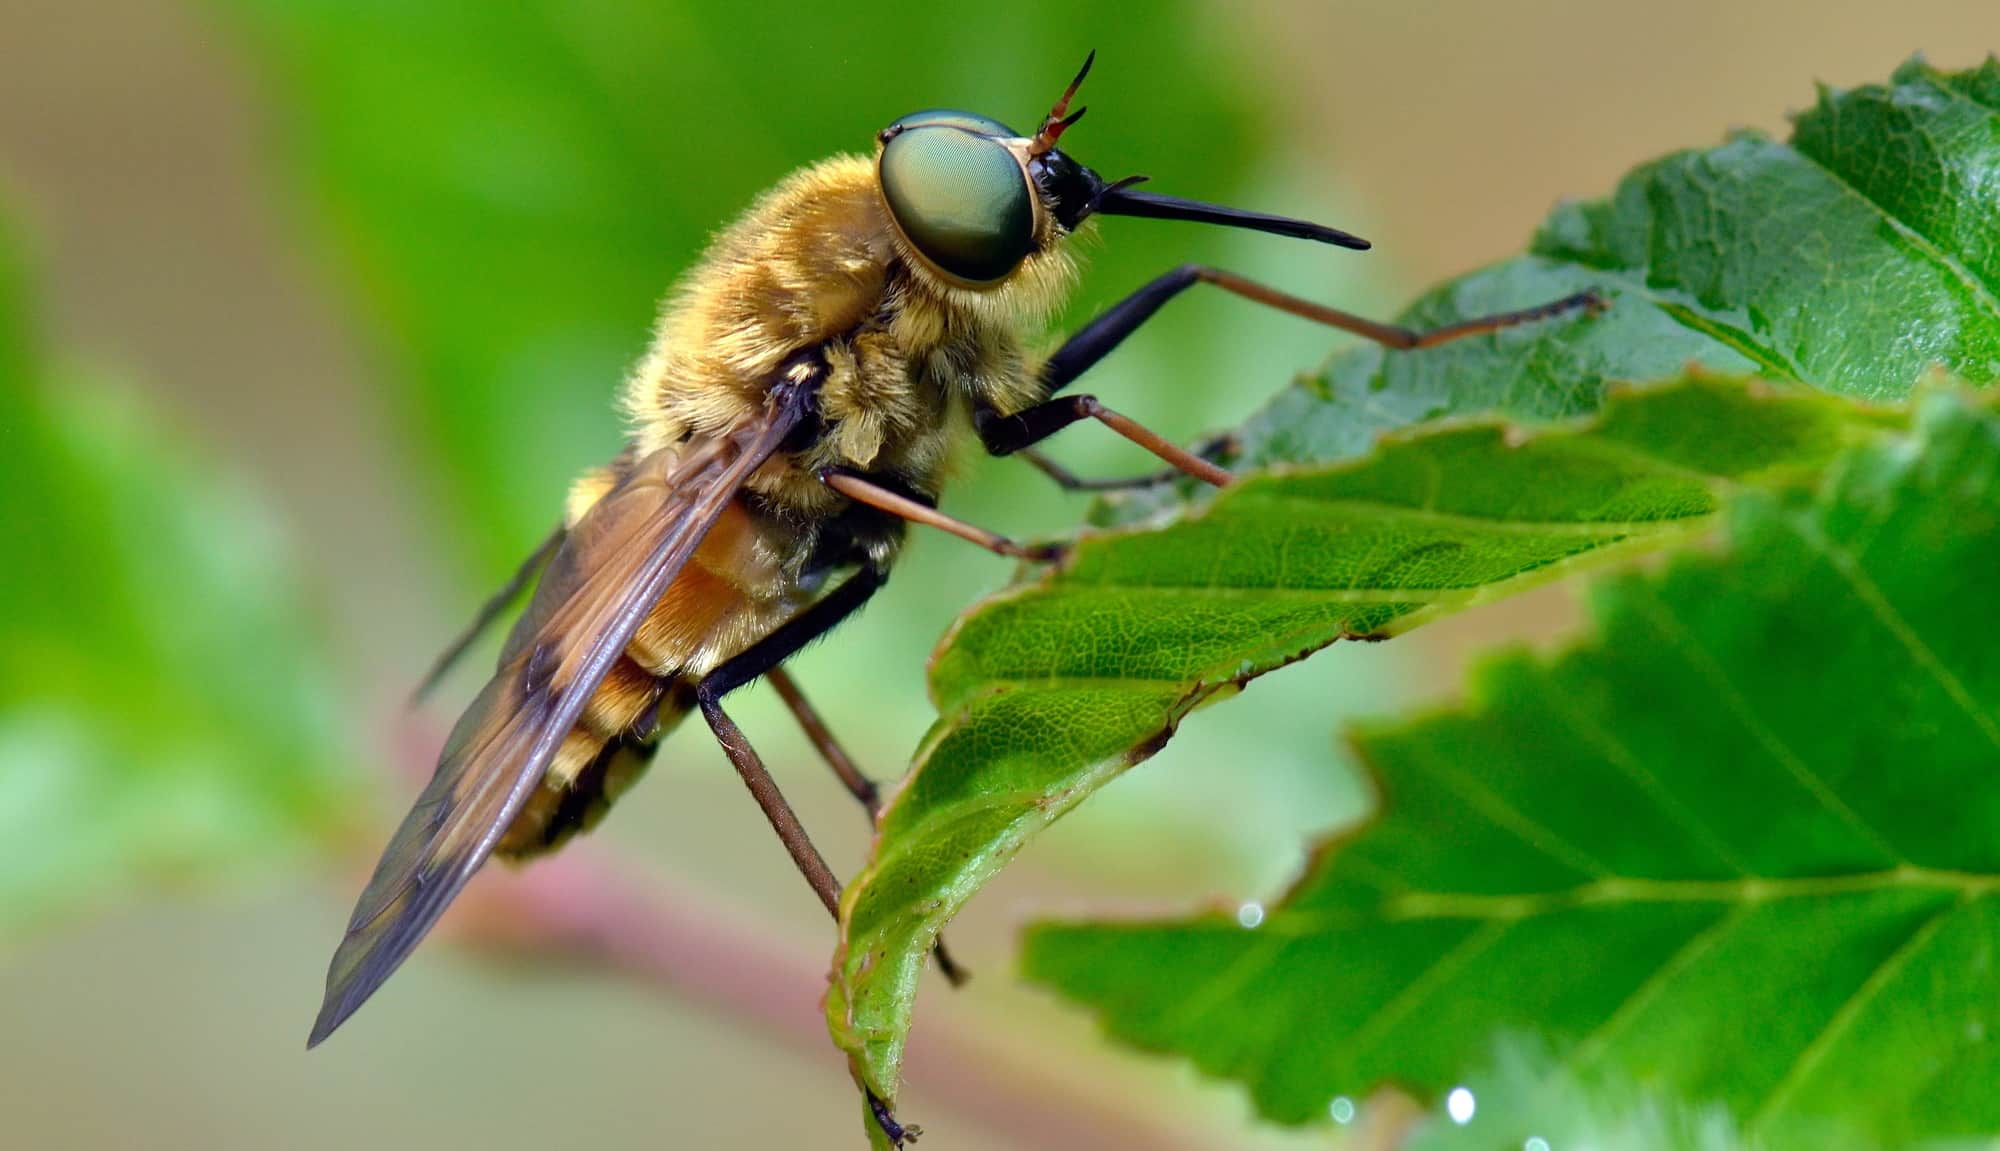 b**p | by young people for young people Horseflies leave a ...